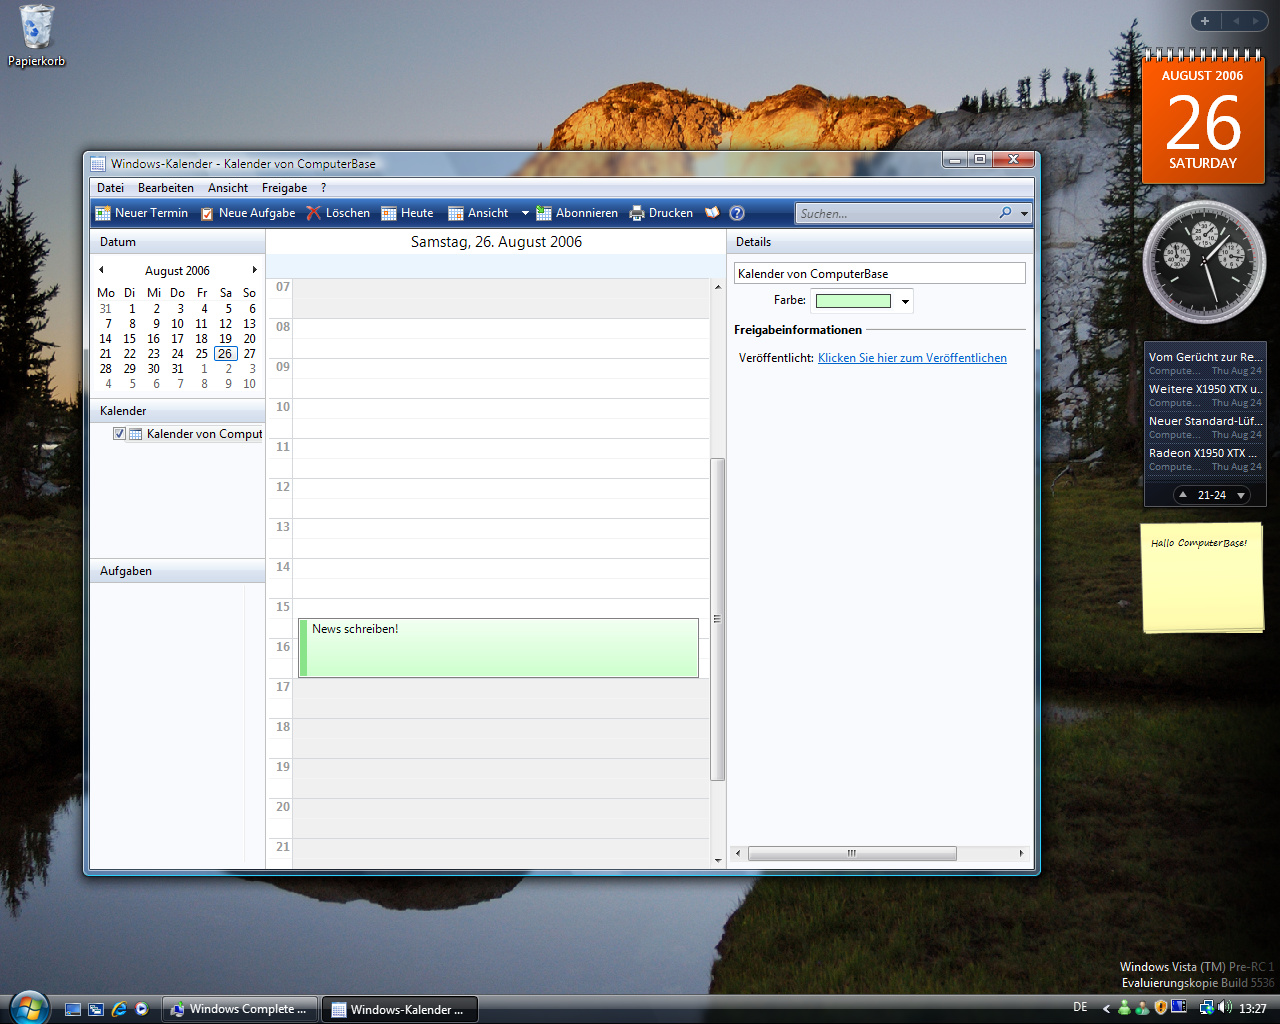 Windows Vista Build 5536 - Kalender